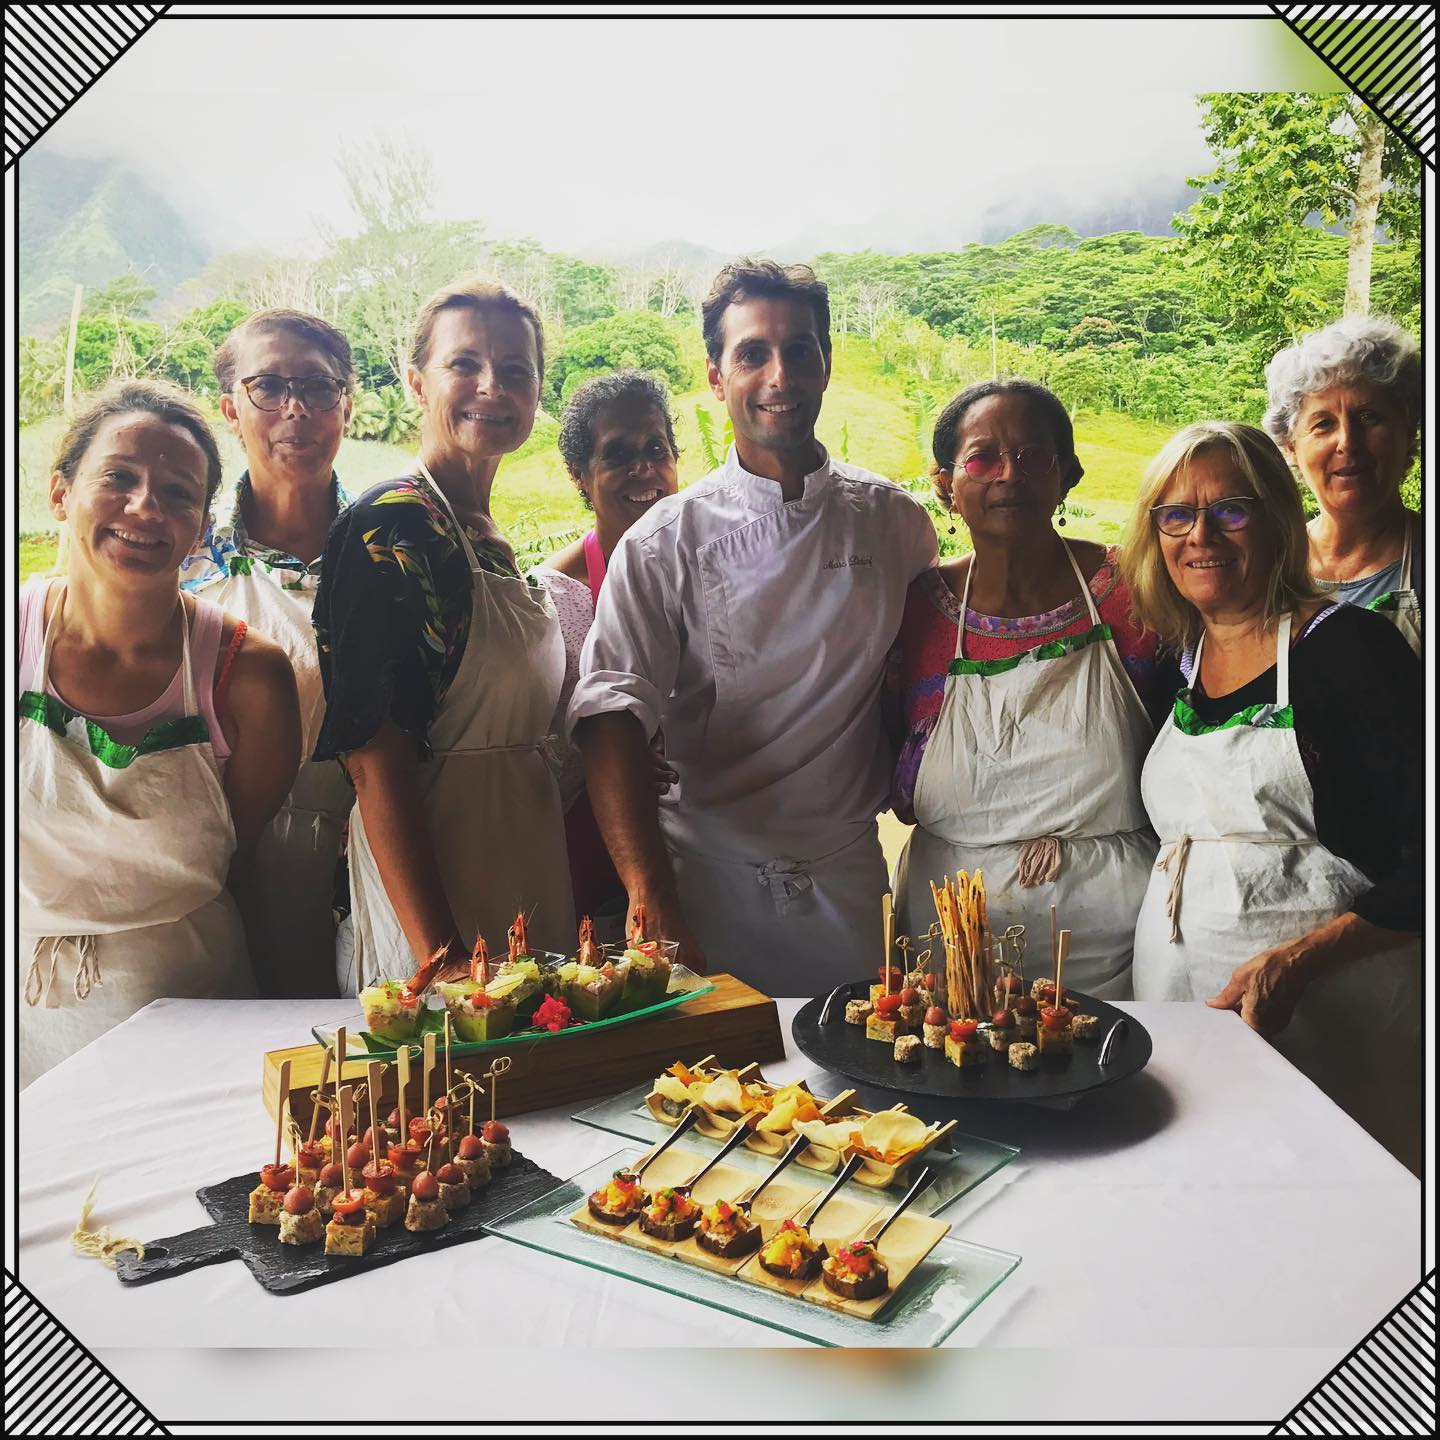 culinary workshops with Marc Lintanf